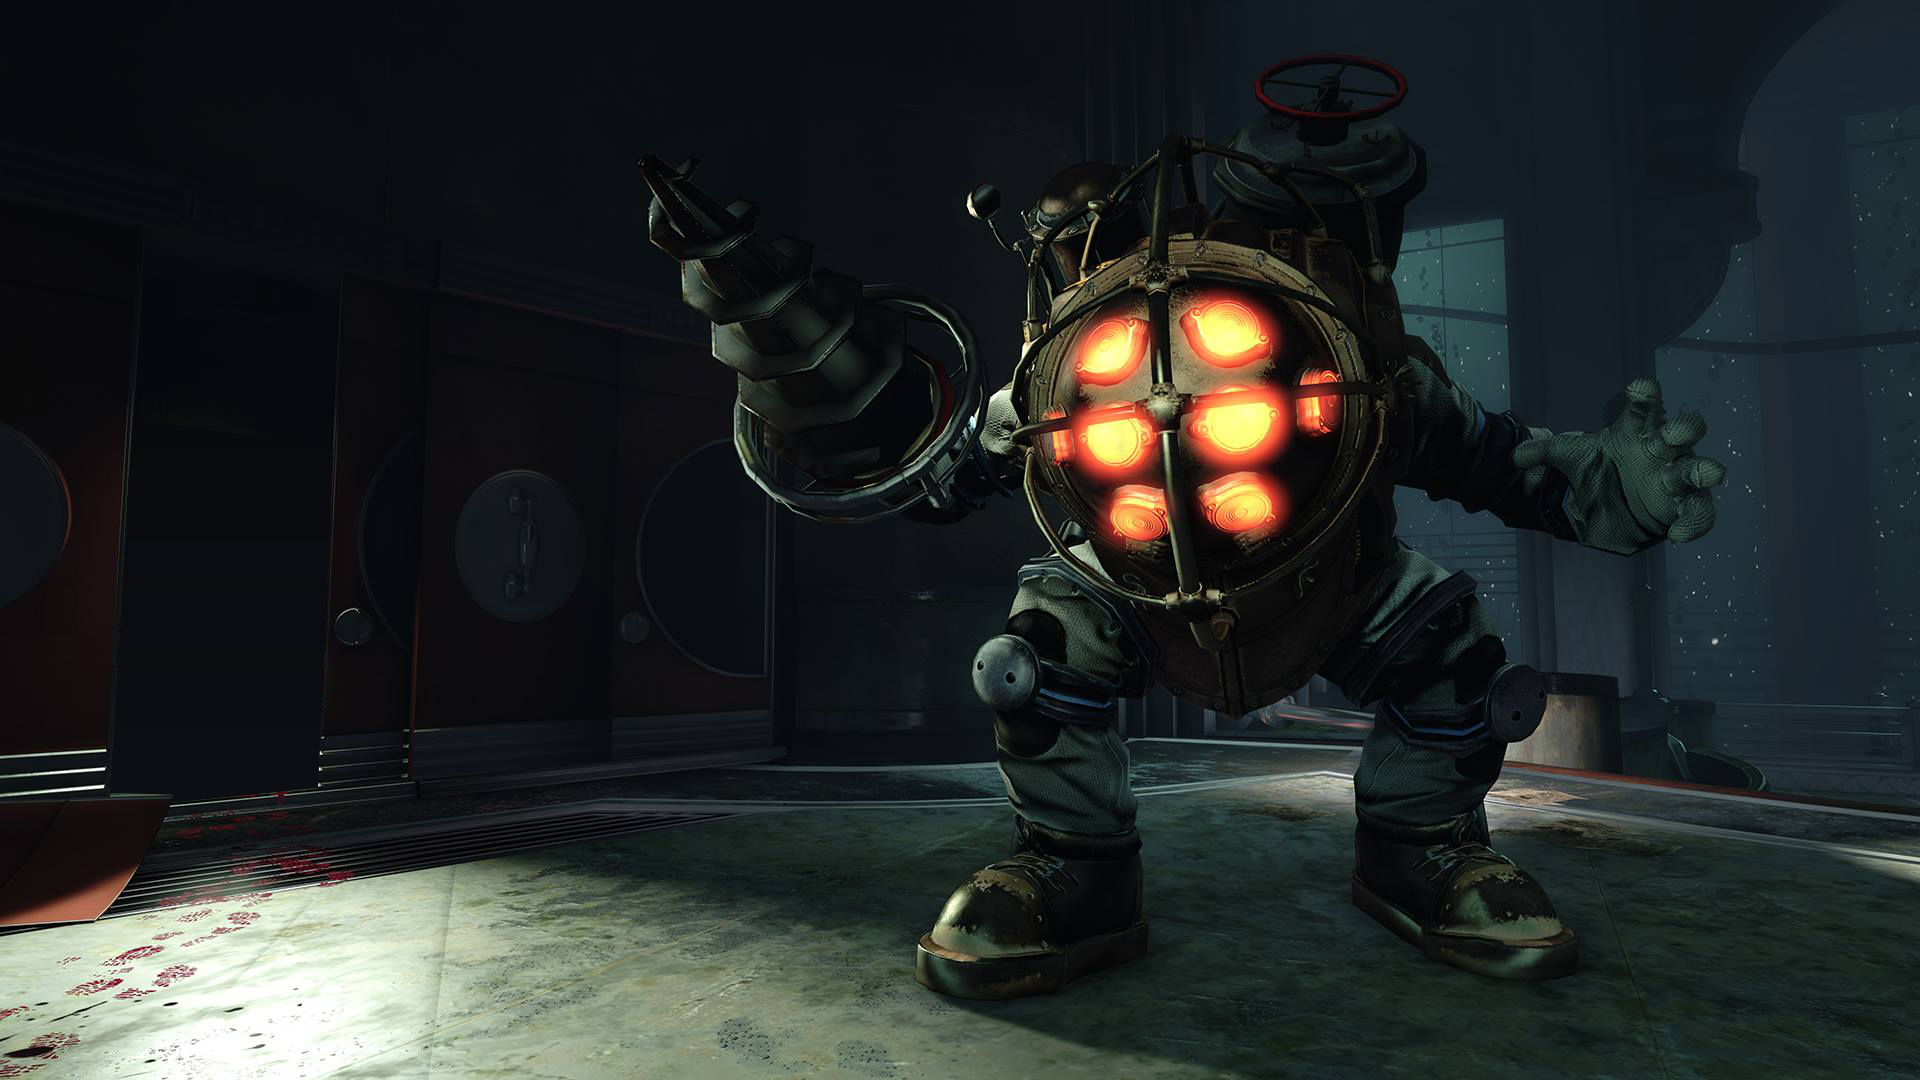 Big Daddy from Bioshock - another reason why it's in our top games with killer sound - The Klipsch Joint